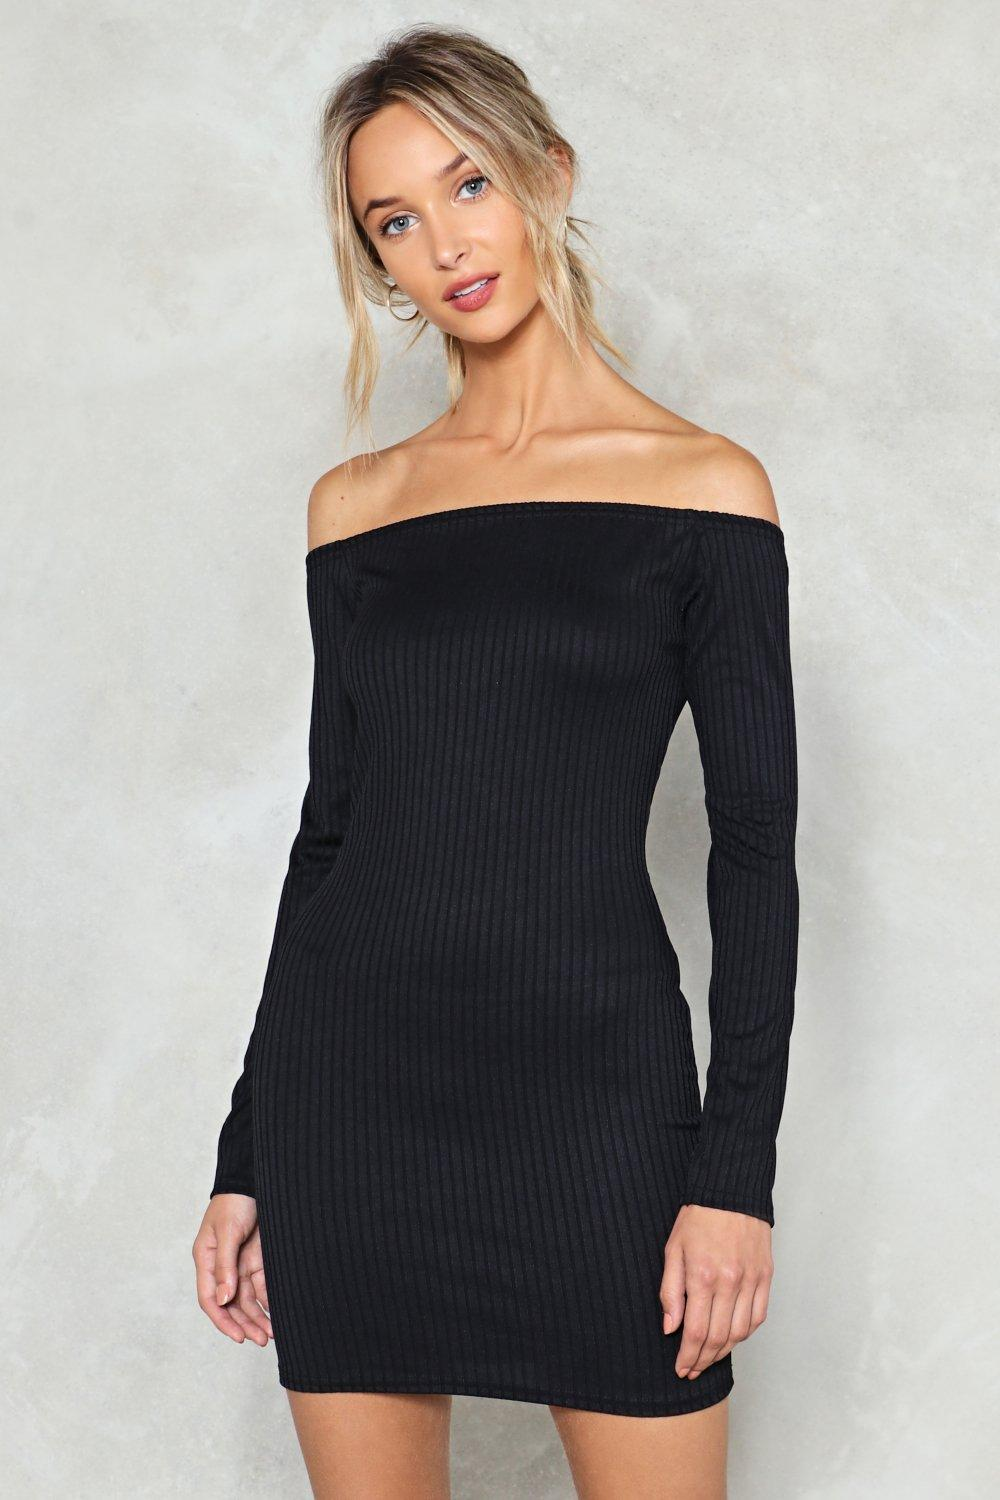 on and off ribbed off-the-shoulder dress | shop clothes at nasty gal!